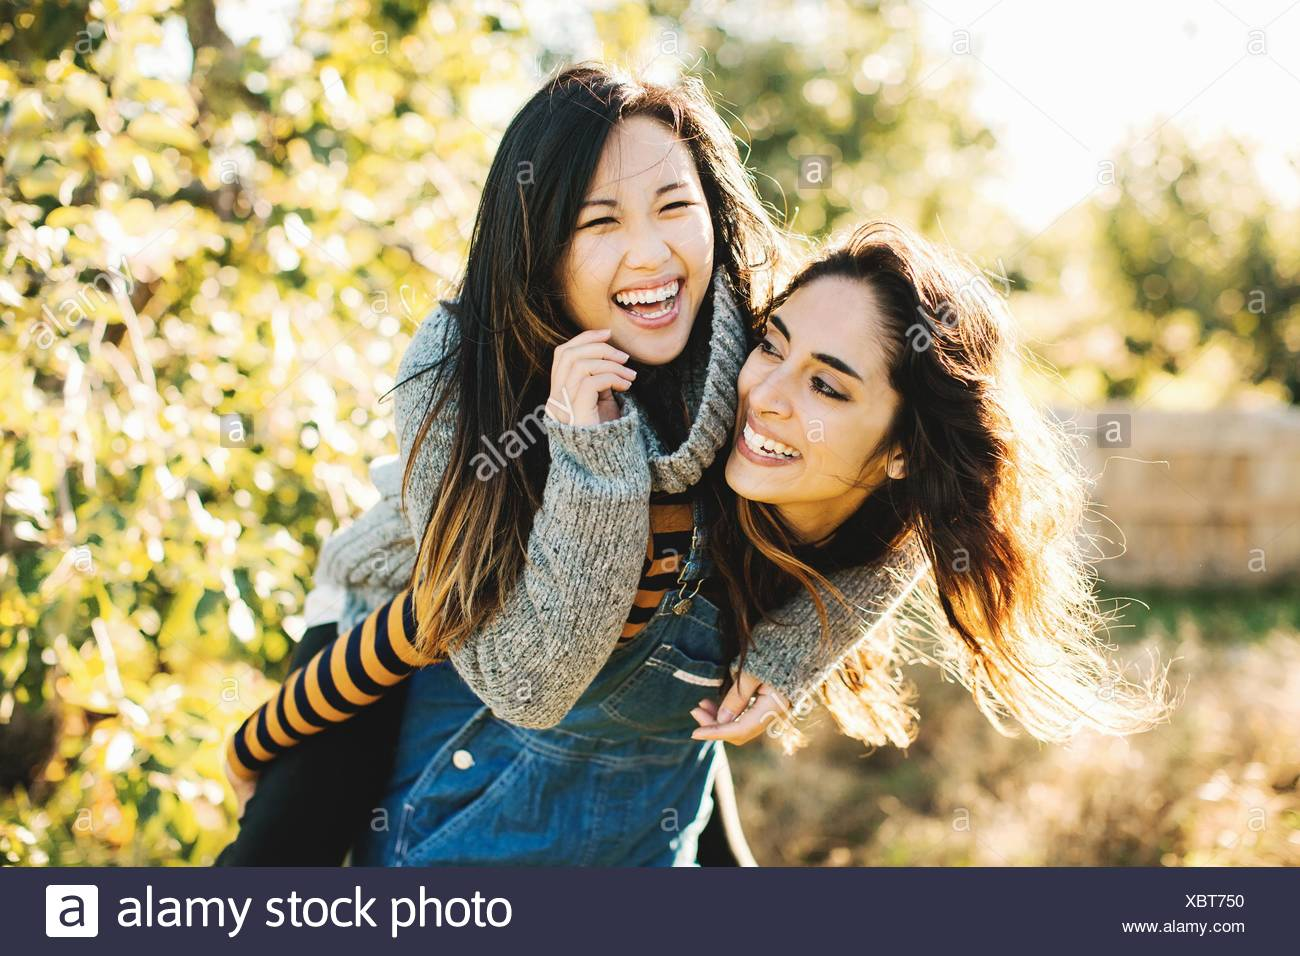 Young woman giving friend piggyback ride, outdoors - Stock Image